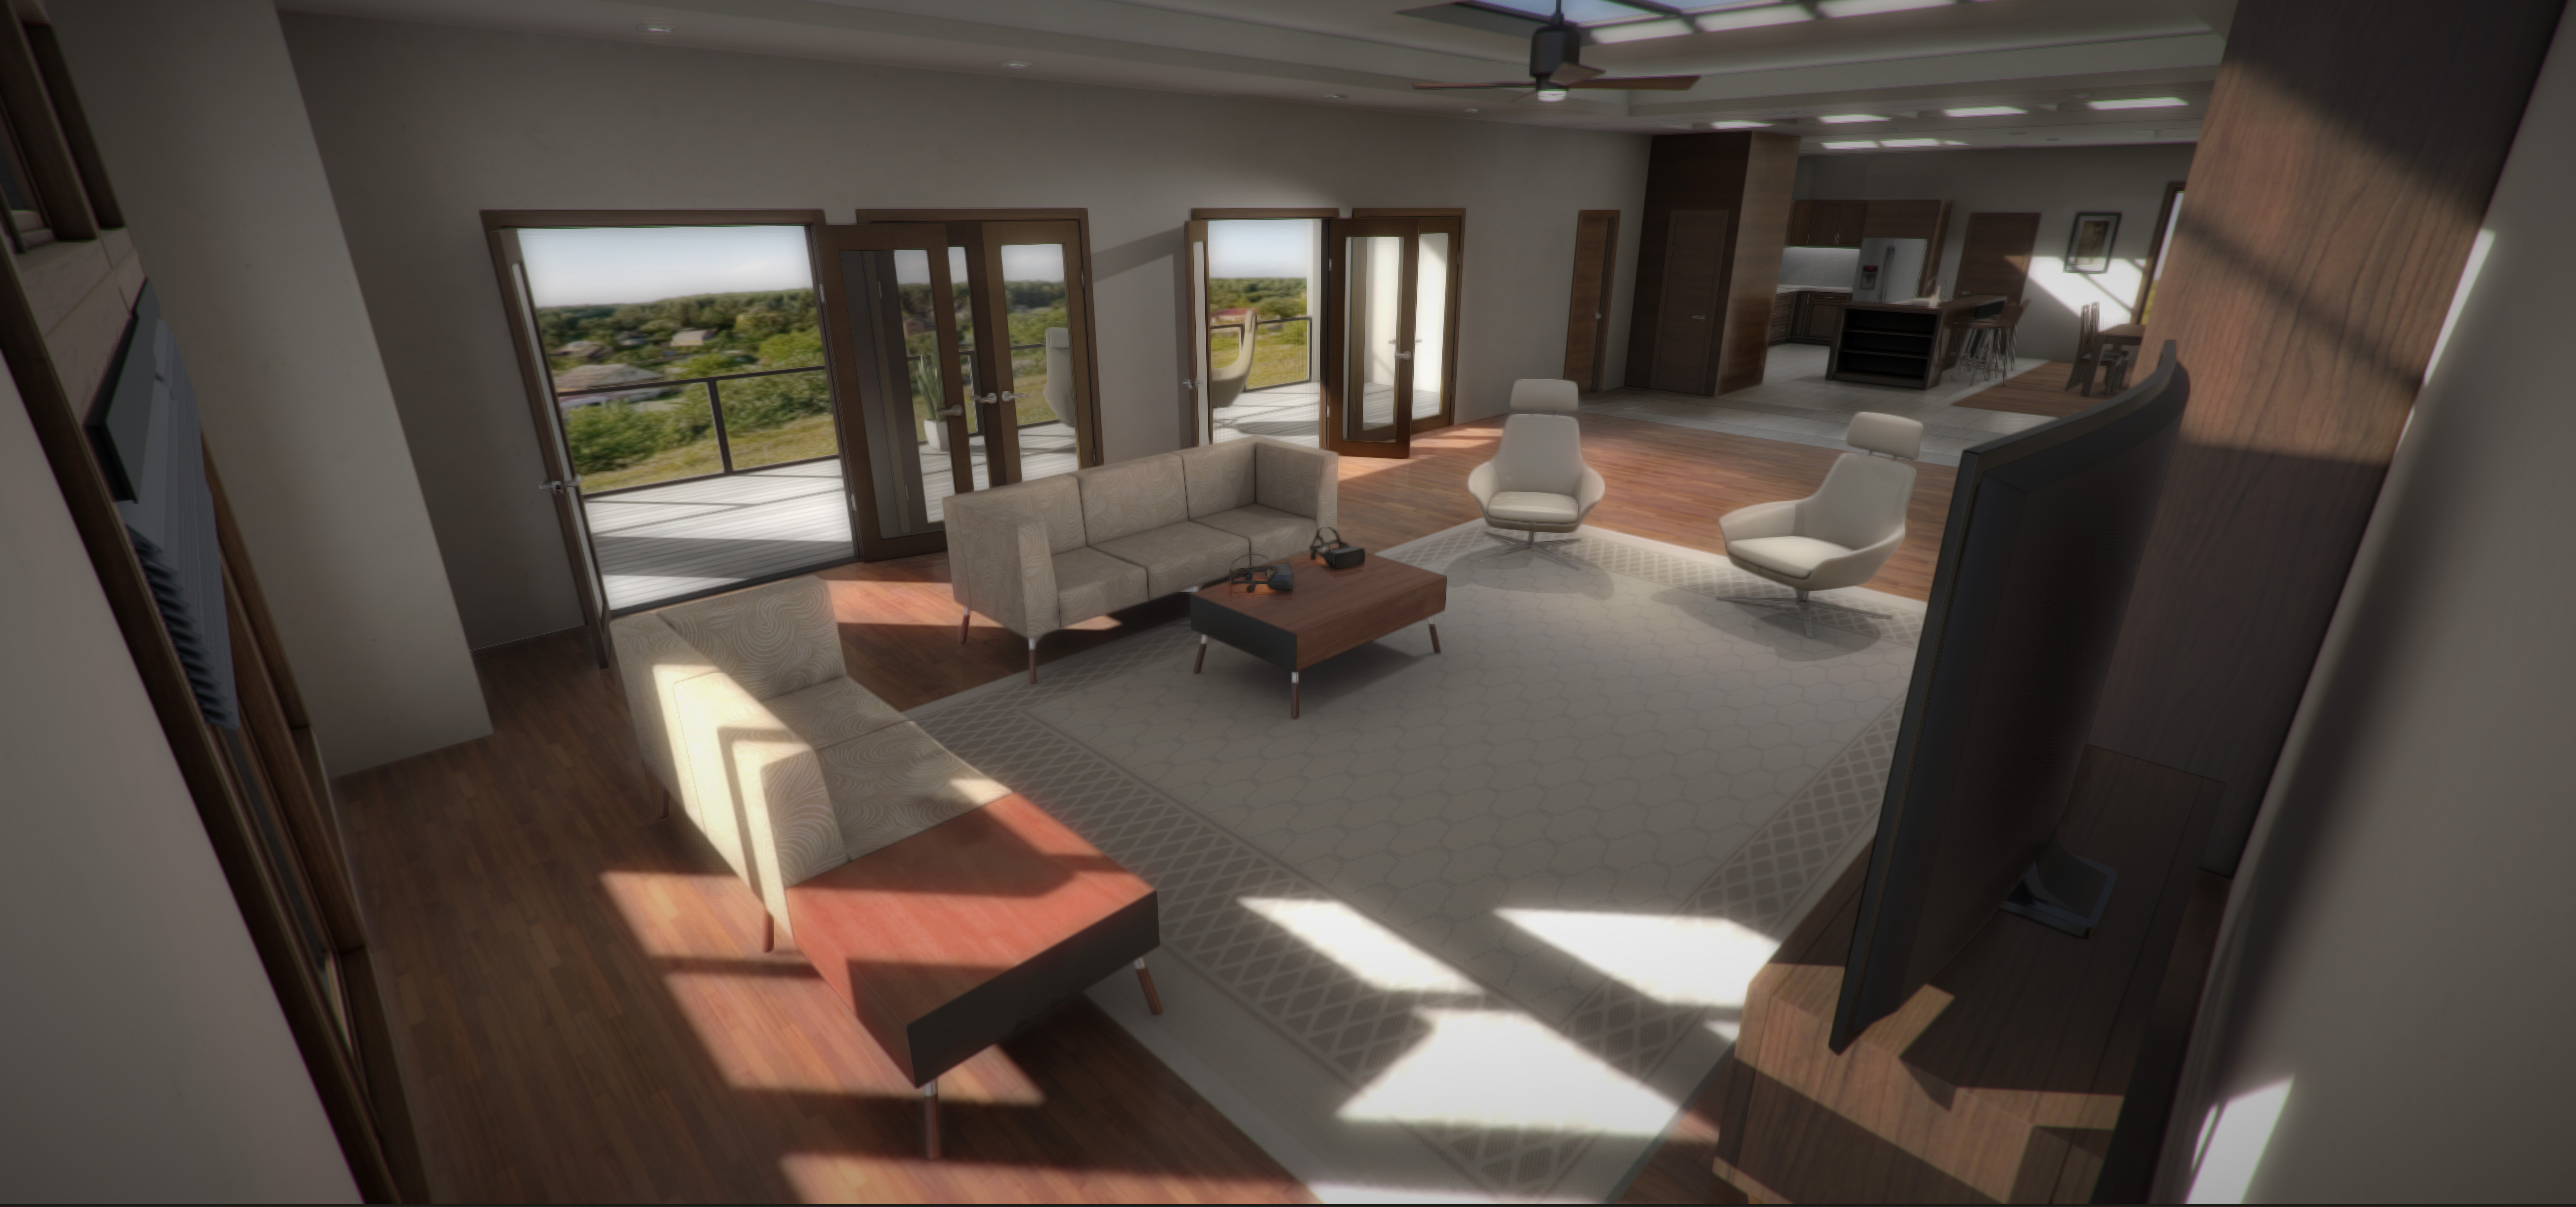 Residential Condo Virtual Reality Architectural Visualization